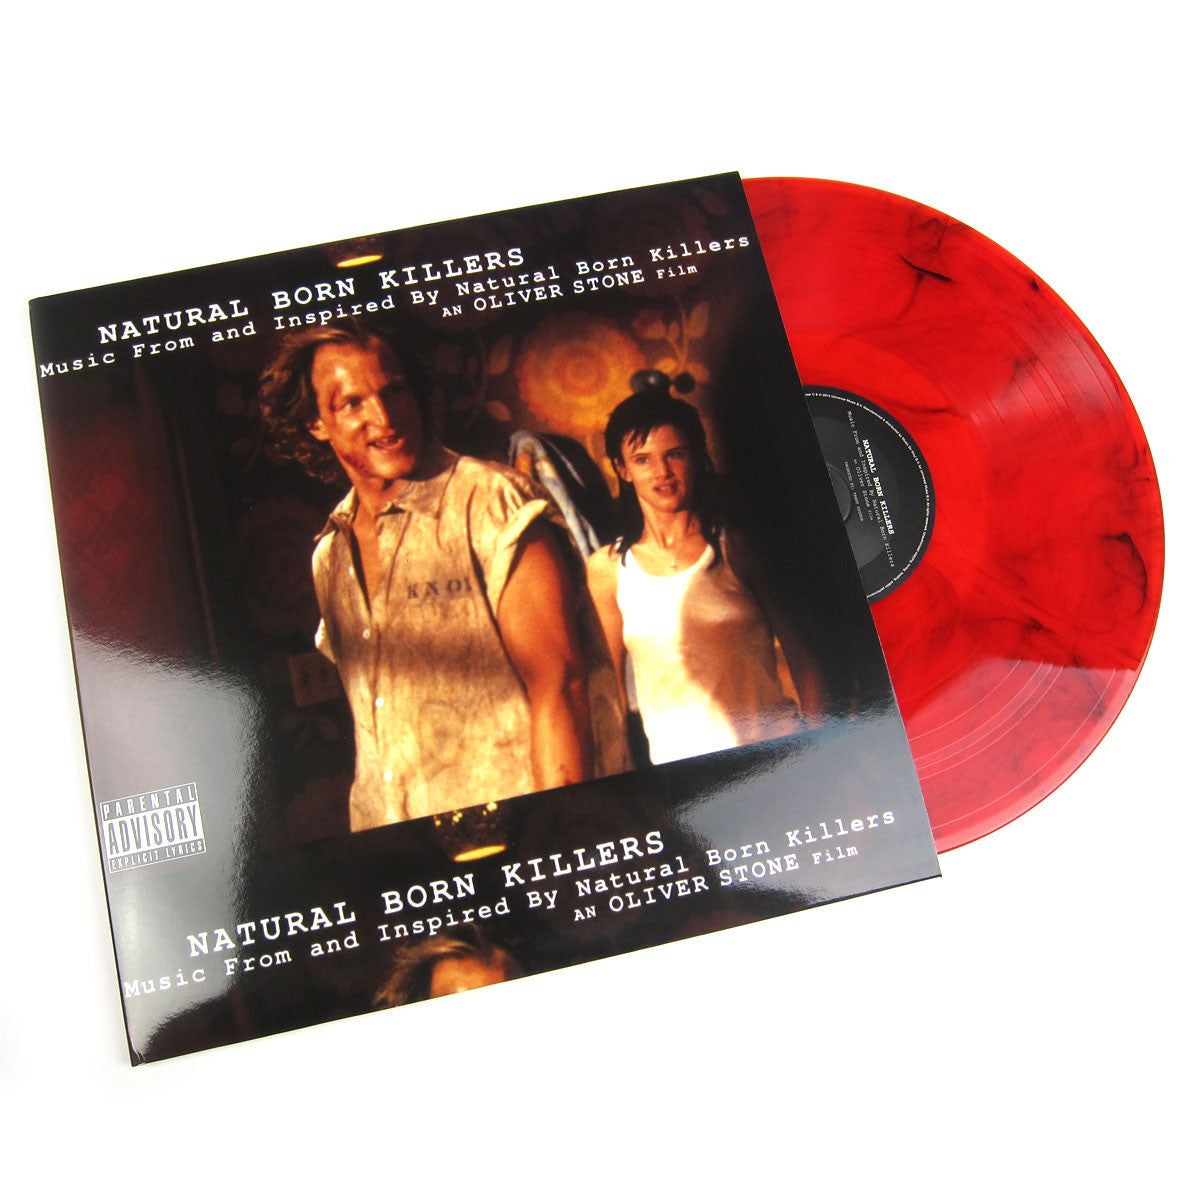 Natural Born Killers: Music From And Inspired By Natural Born Killers - 20th Anniversary Edition (180g Colored Vinyl) Vinyl 2LP